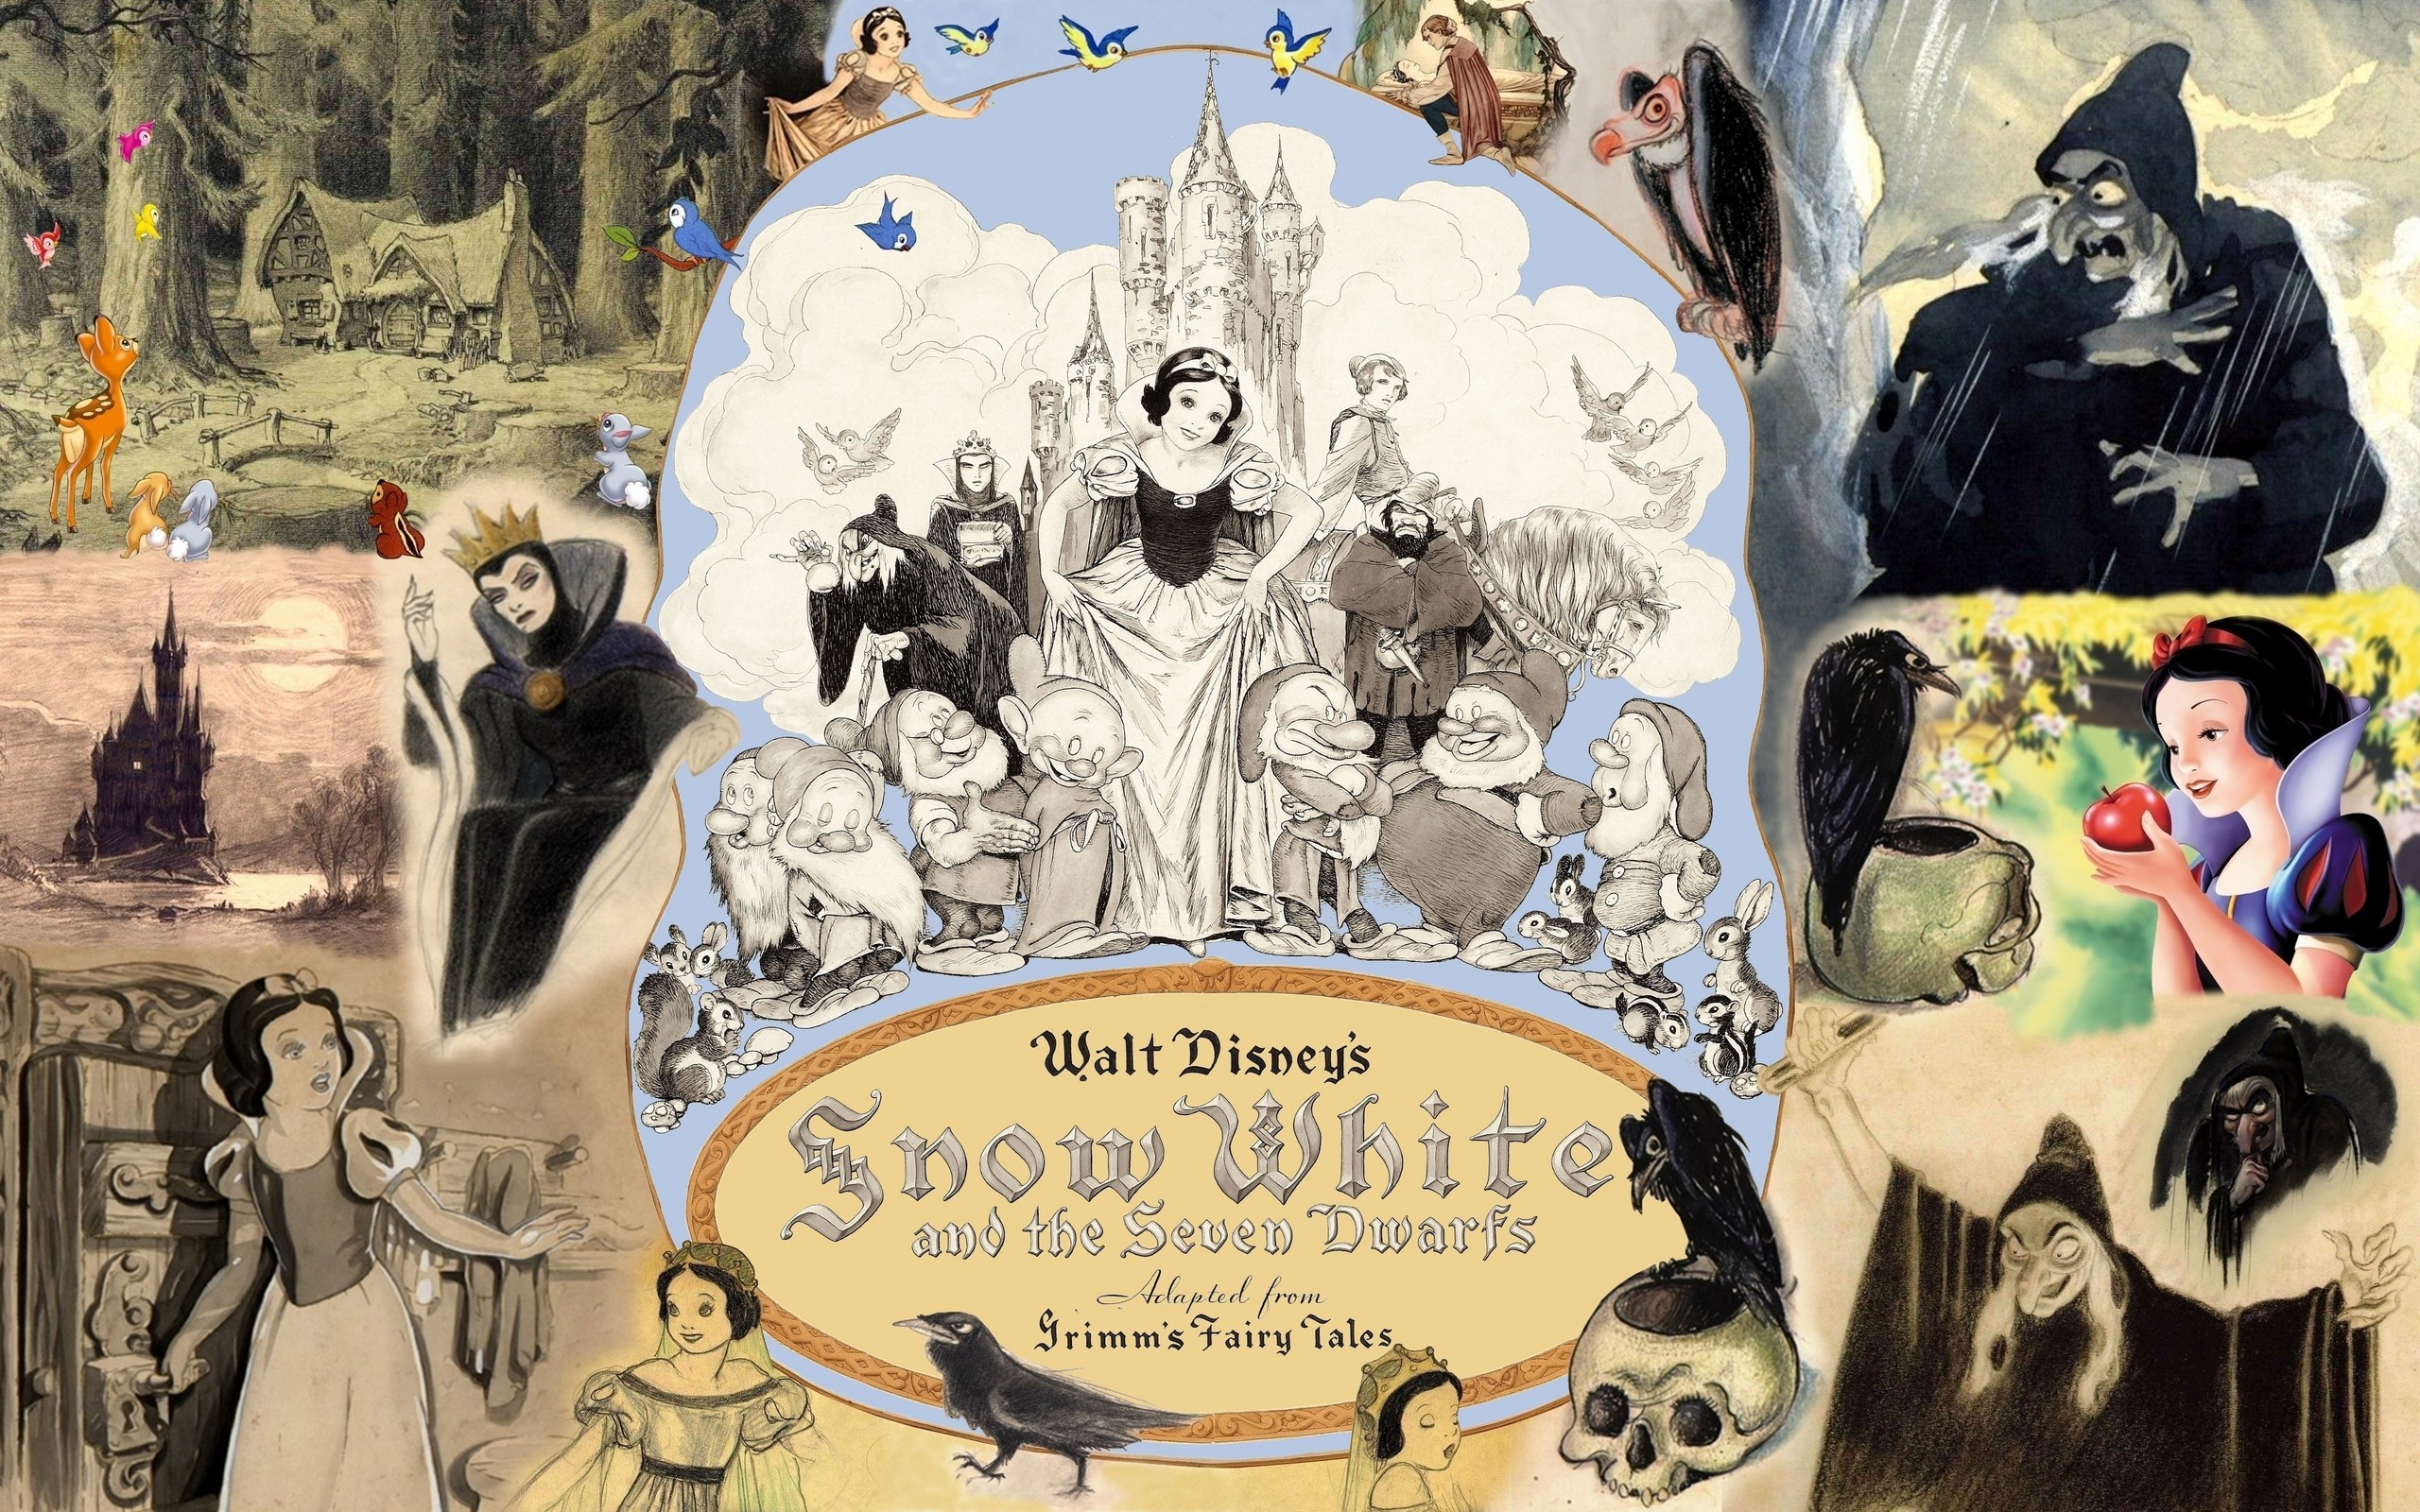 Walt disneys snow white and the seven dwarfs by walt disney - from aleph-bet books, inc and bibliocouk